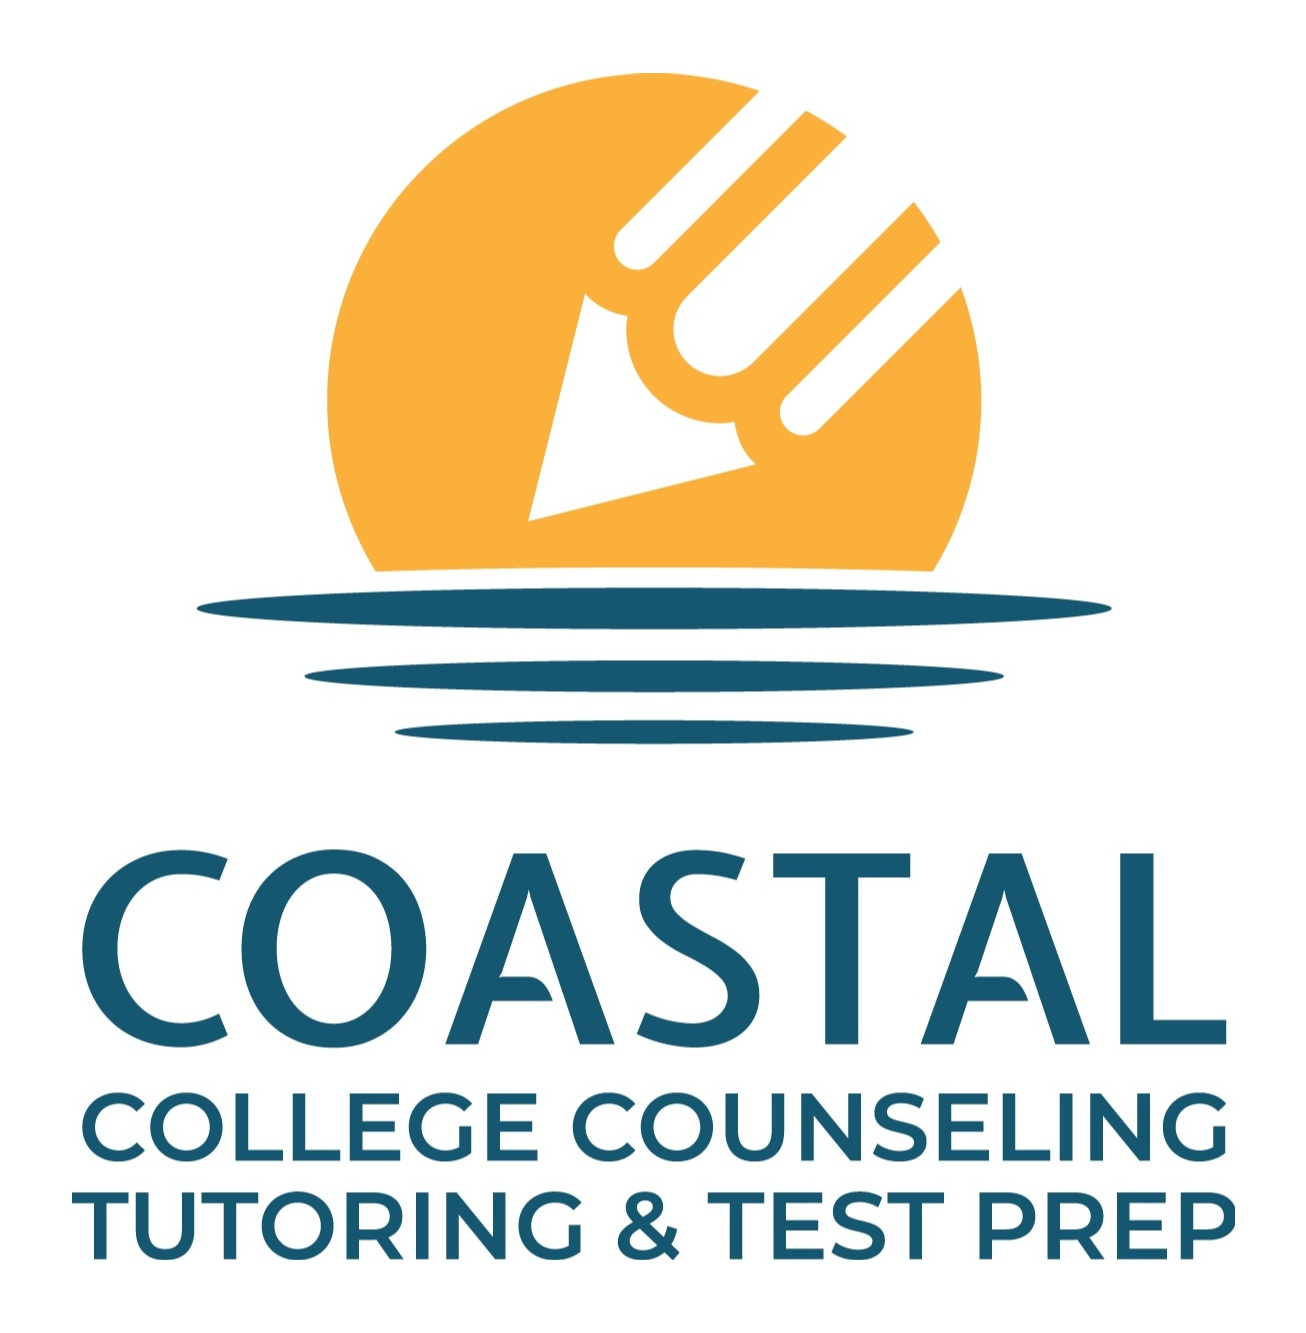 Coastal College Counseling